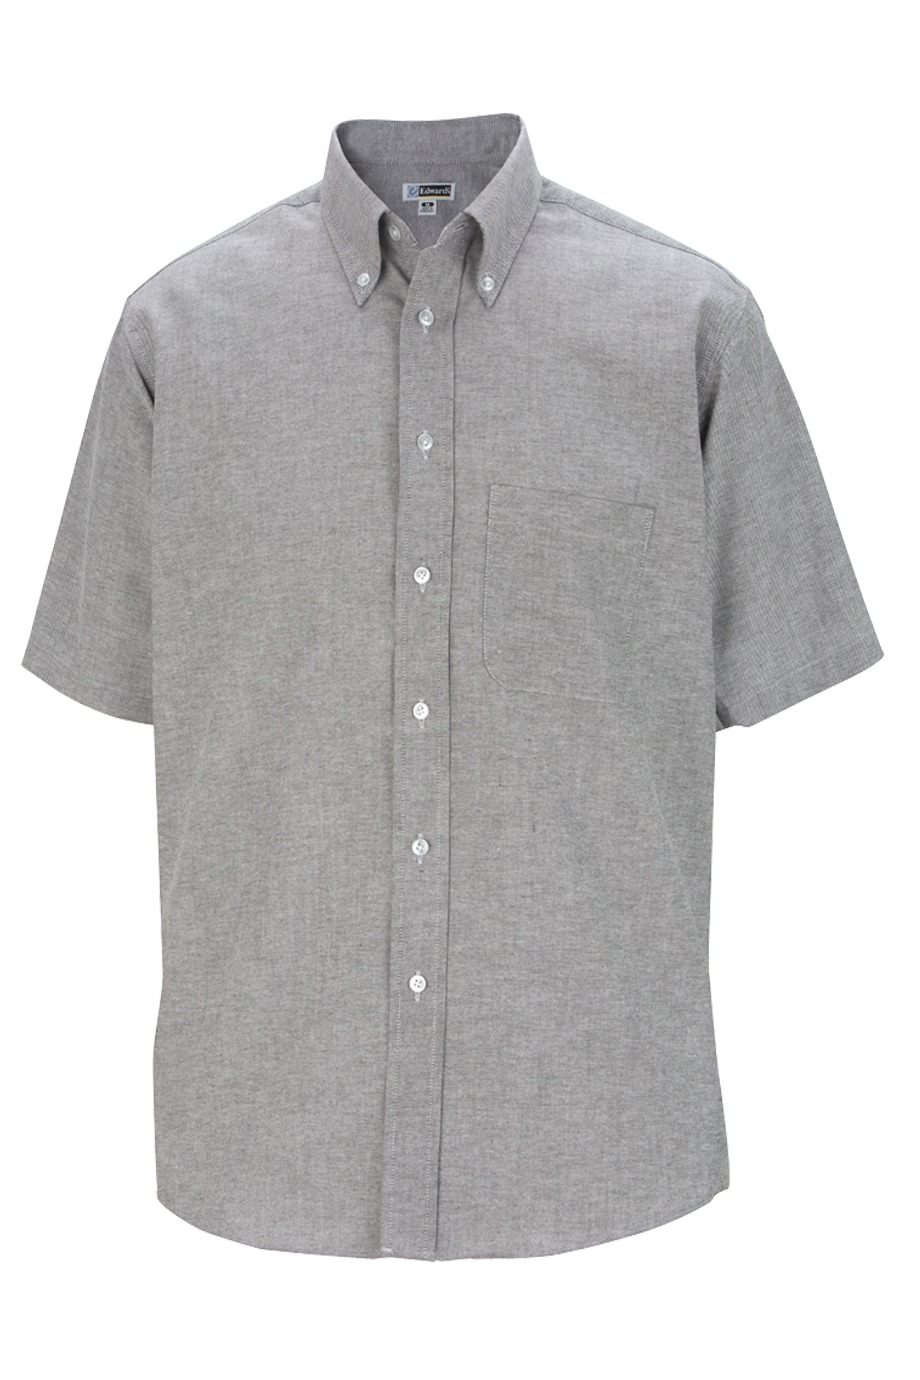 Edwards Garment 1027 - Men's Short Sleeve Oxford Shirt